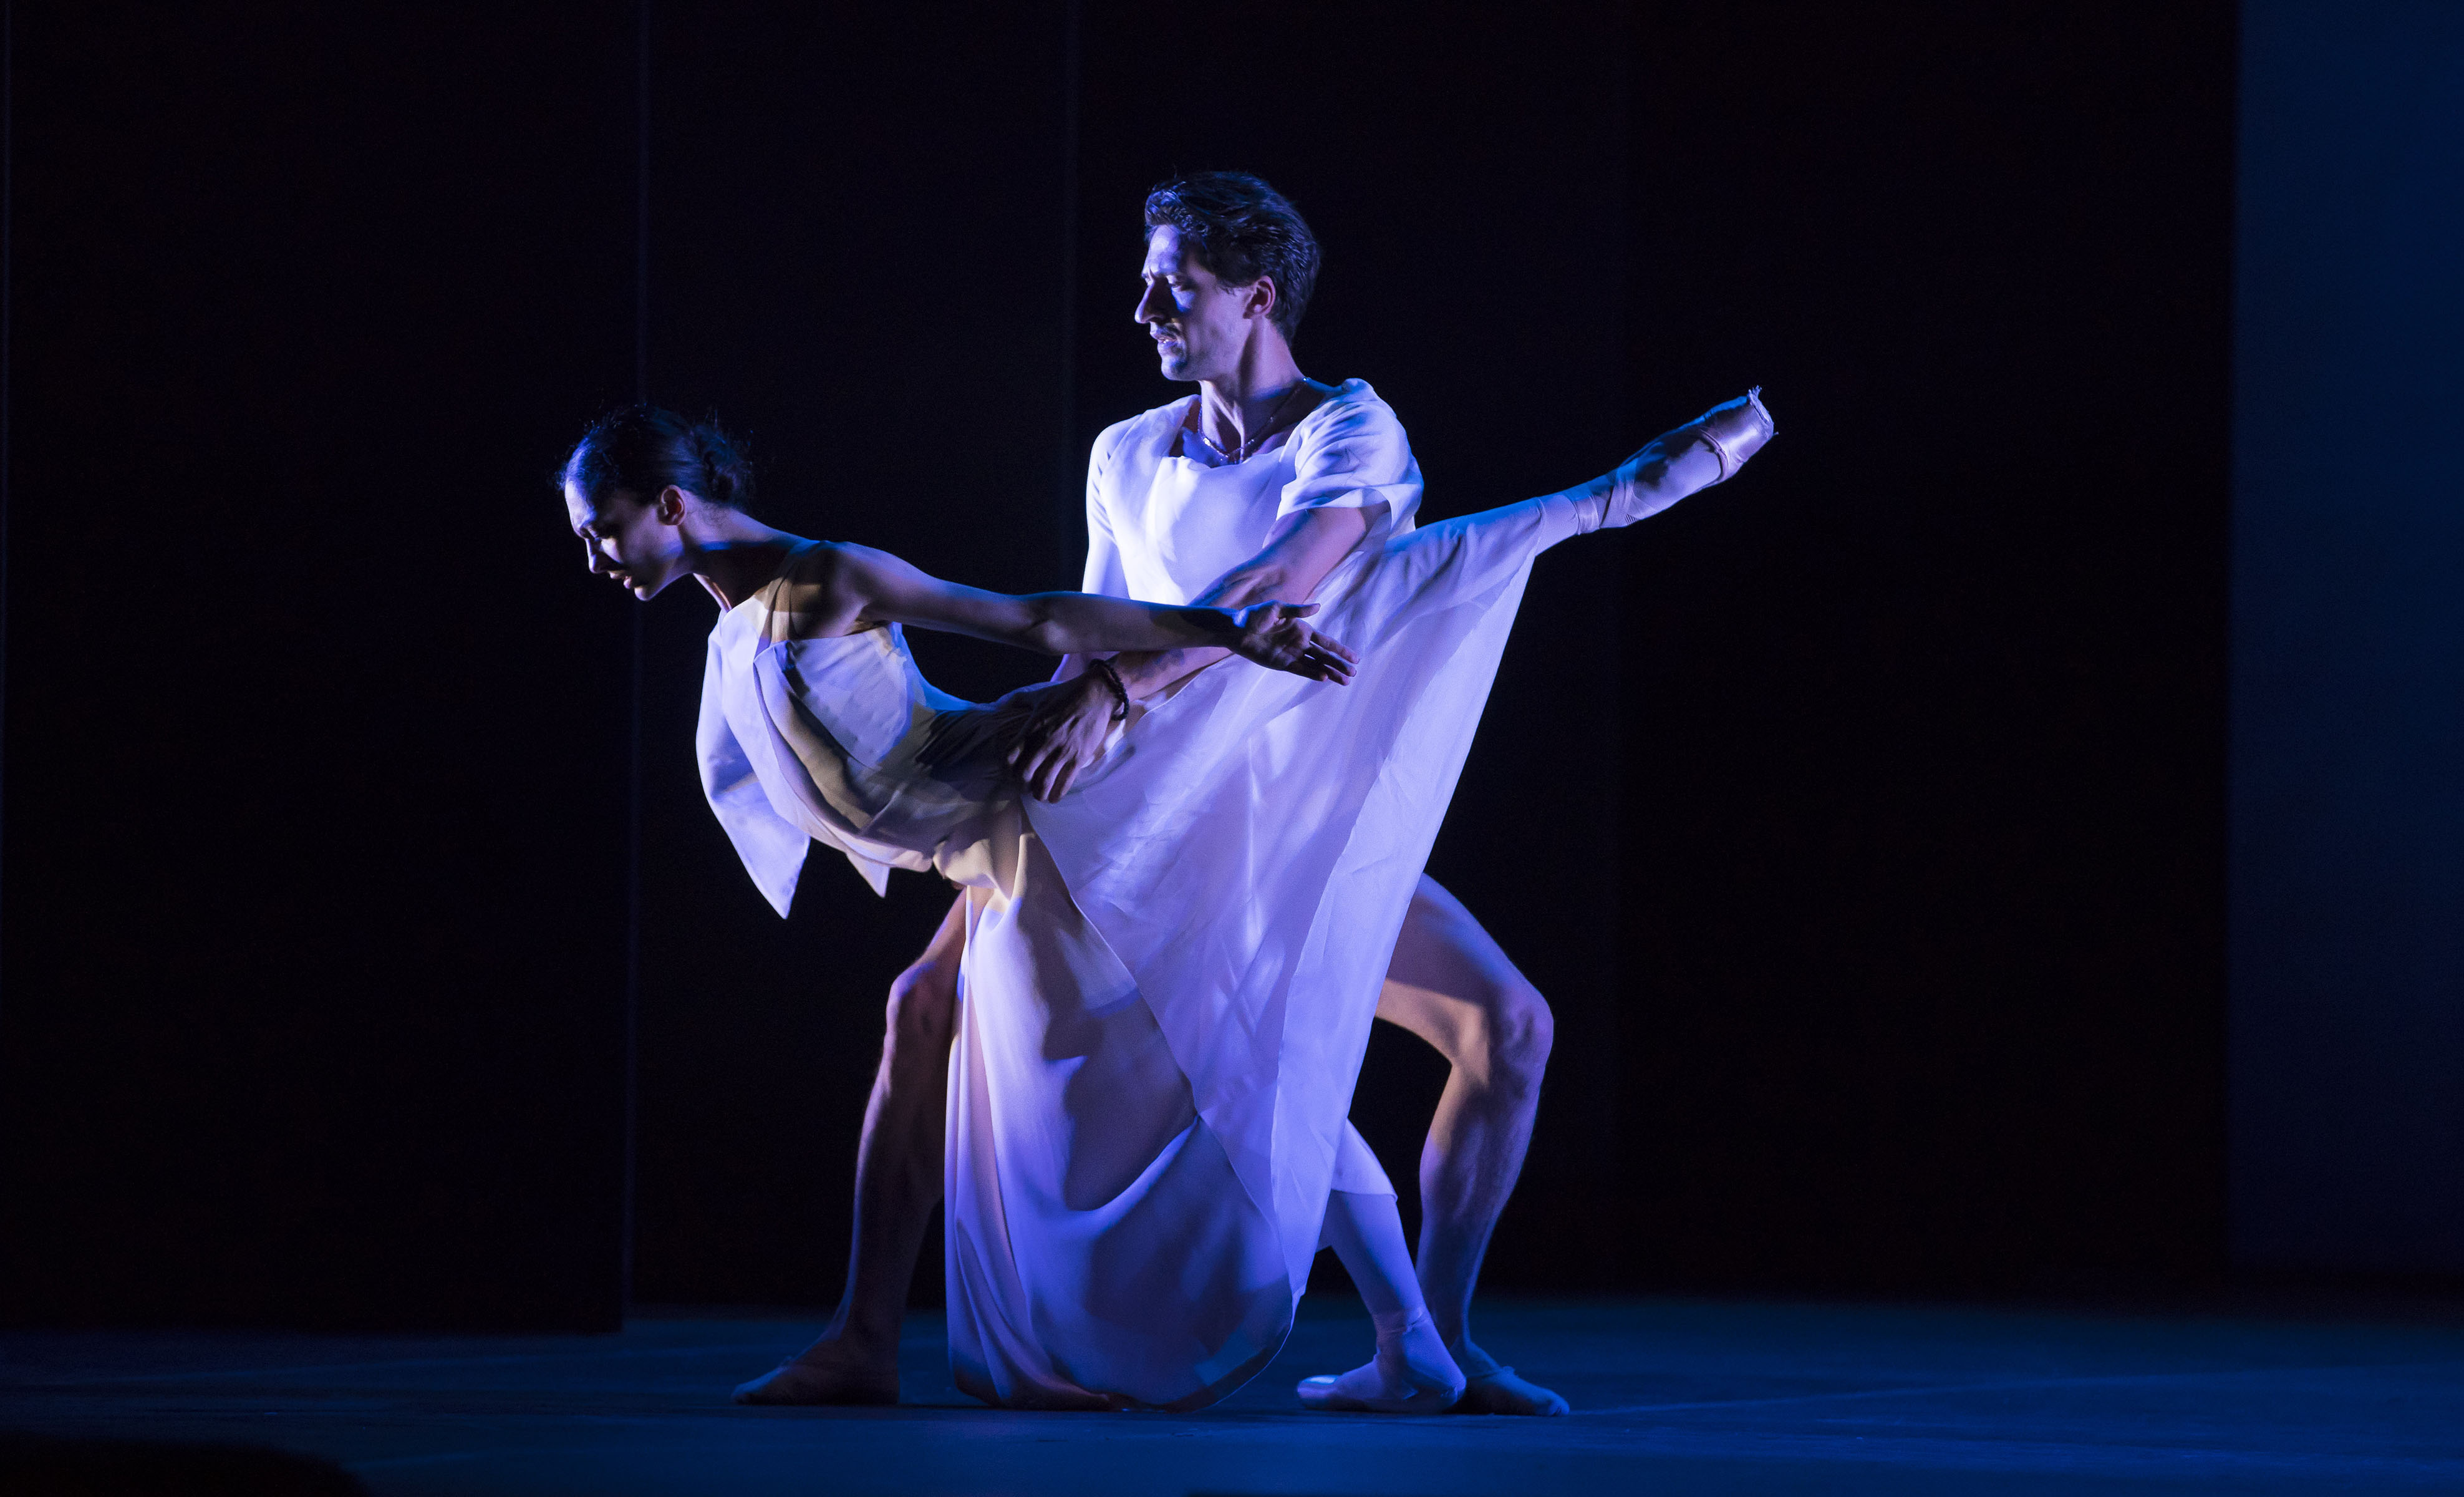 two dancers in white on a dark stage